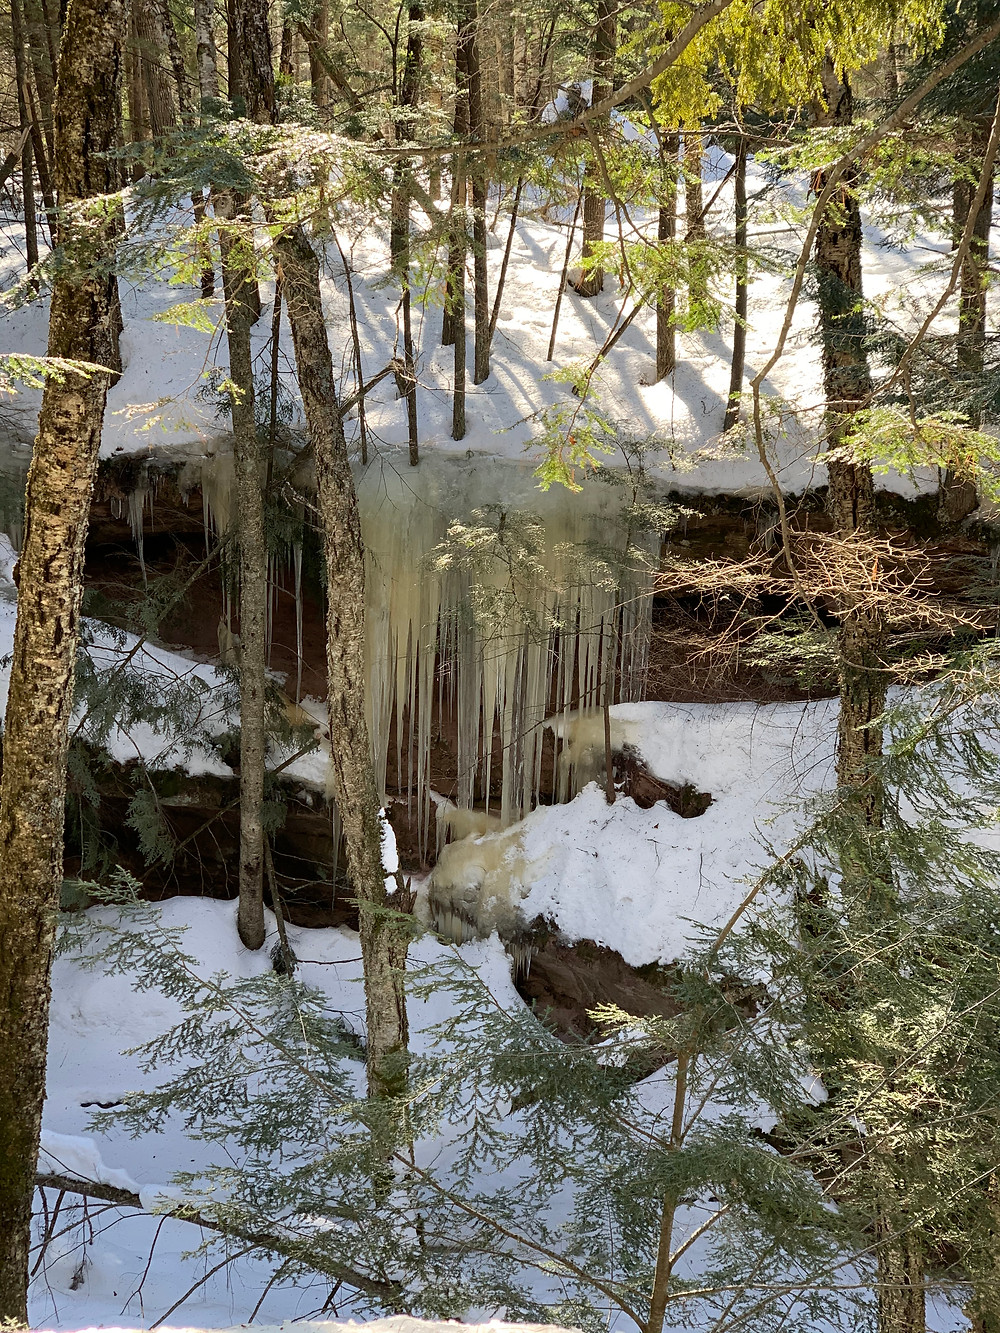 Winter hiking in Bayfield WI